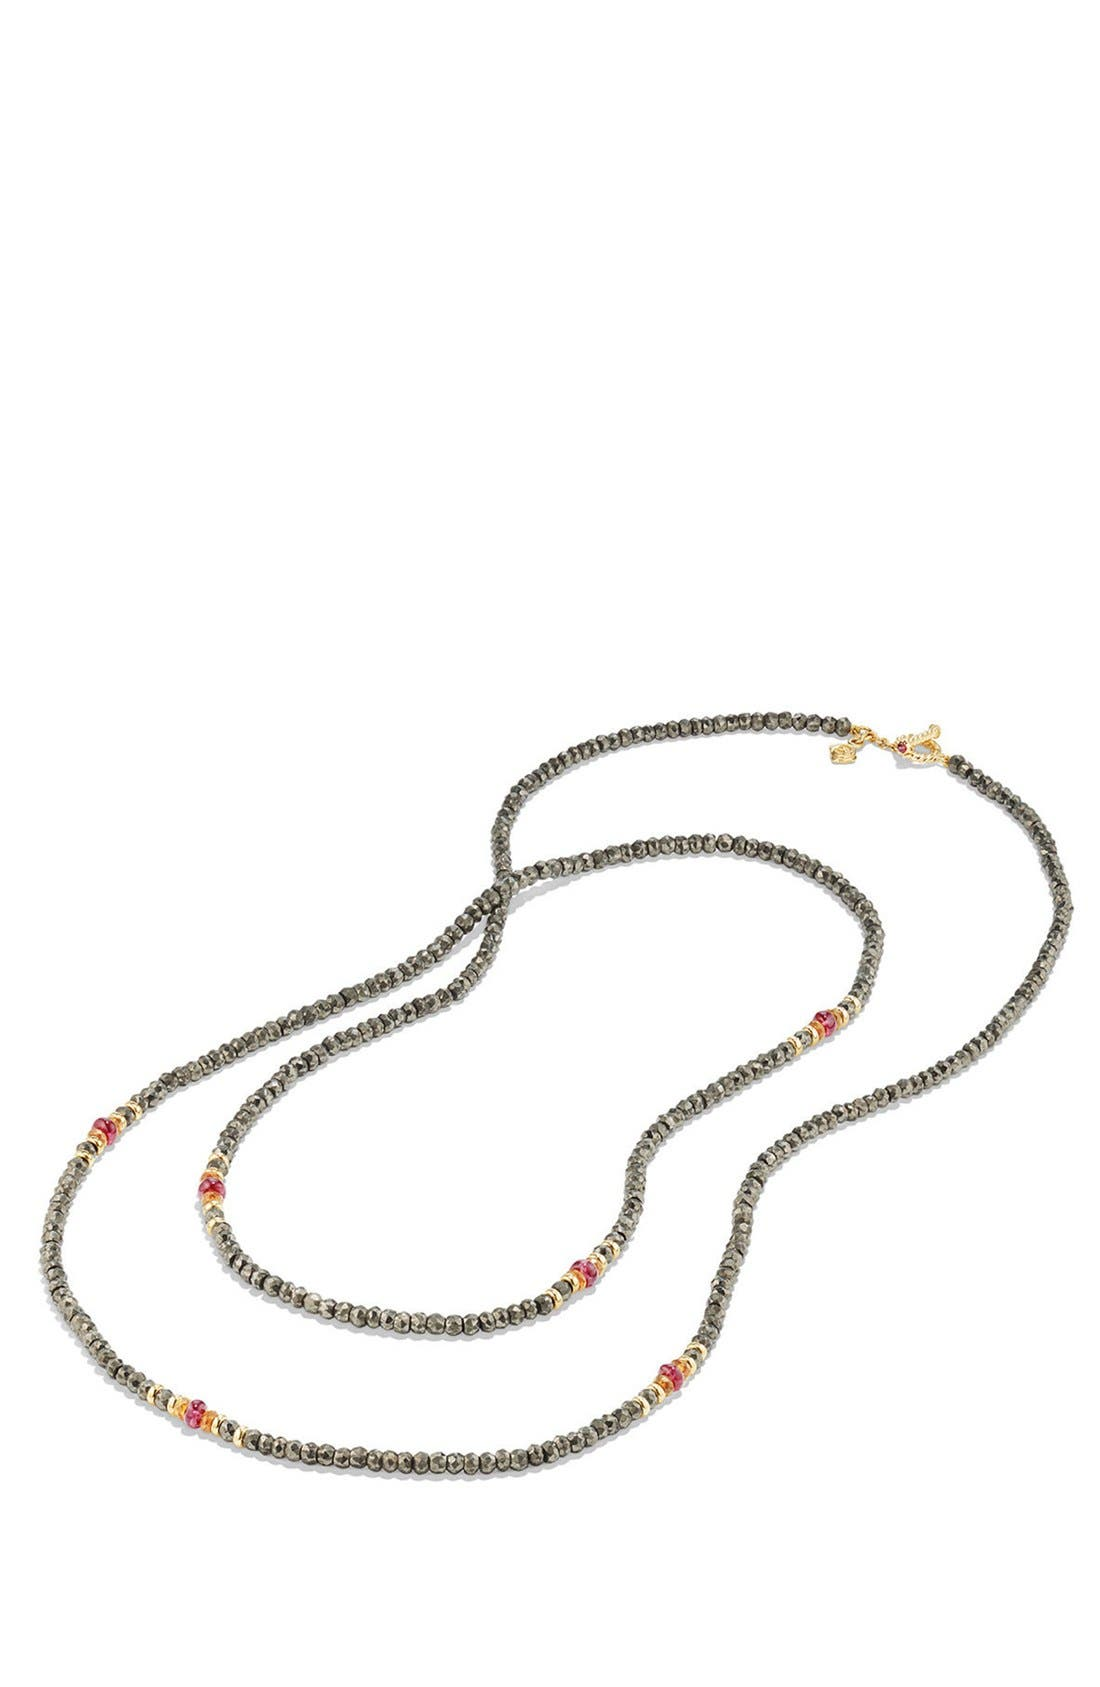 Cable Berries Tweejoux Necklace with 18K Gold,                             Alternate thumbnail 2, color,                             PYRITE